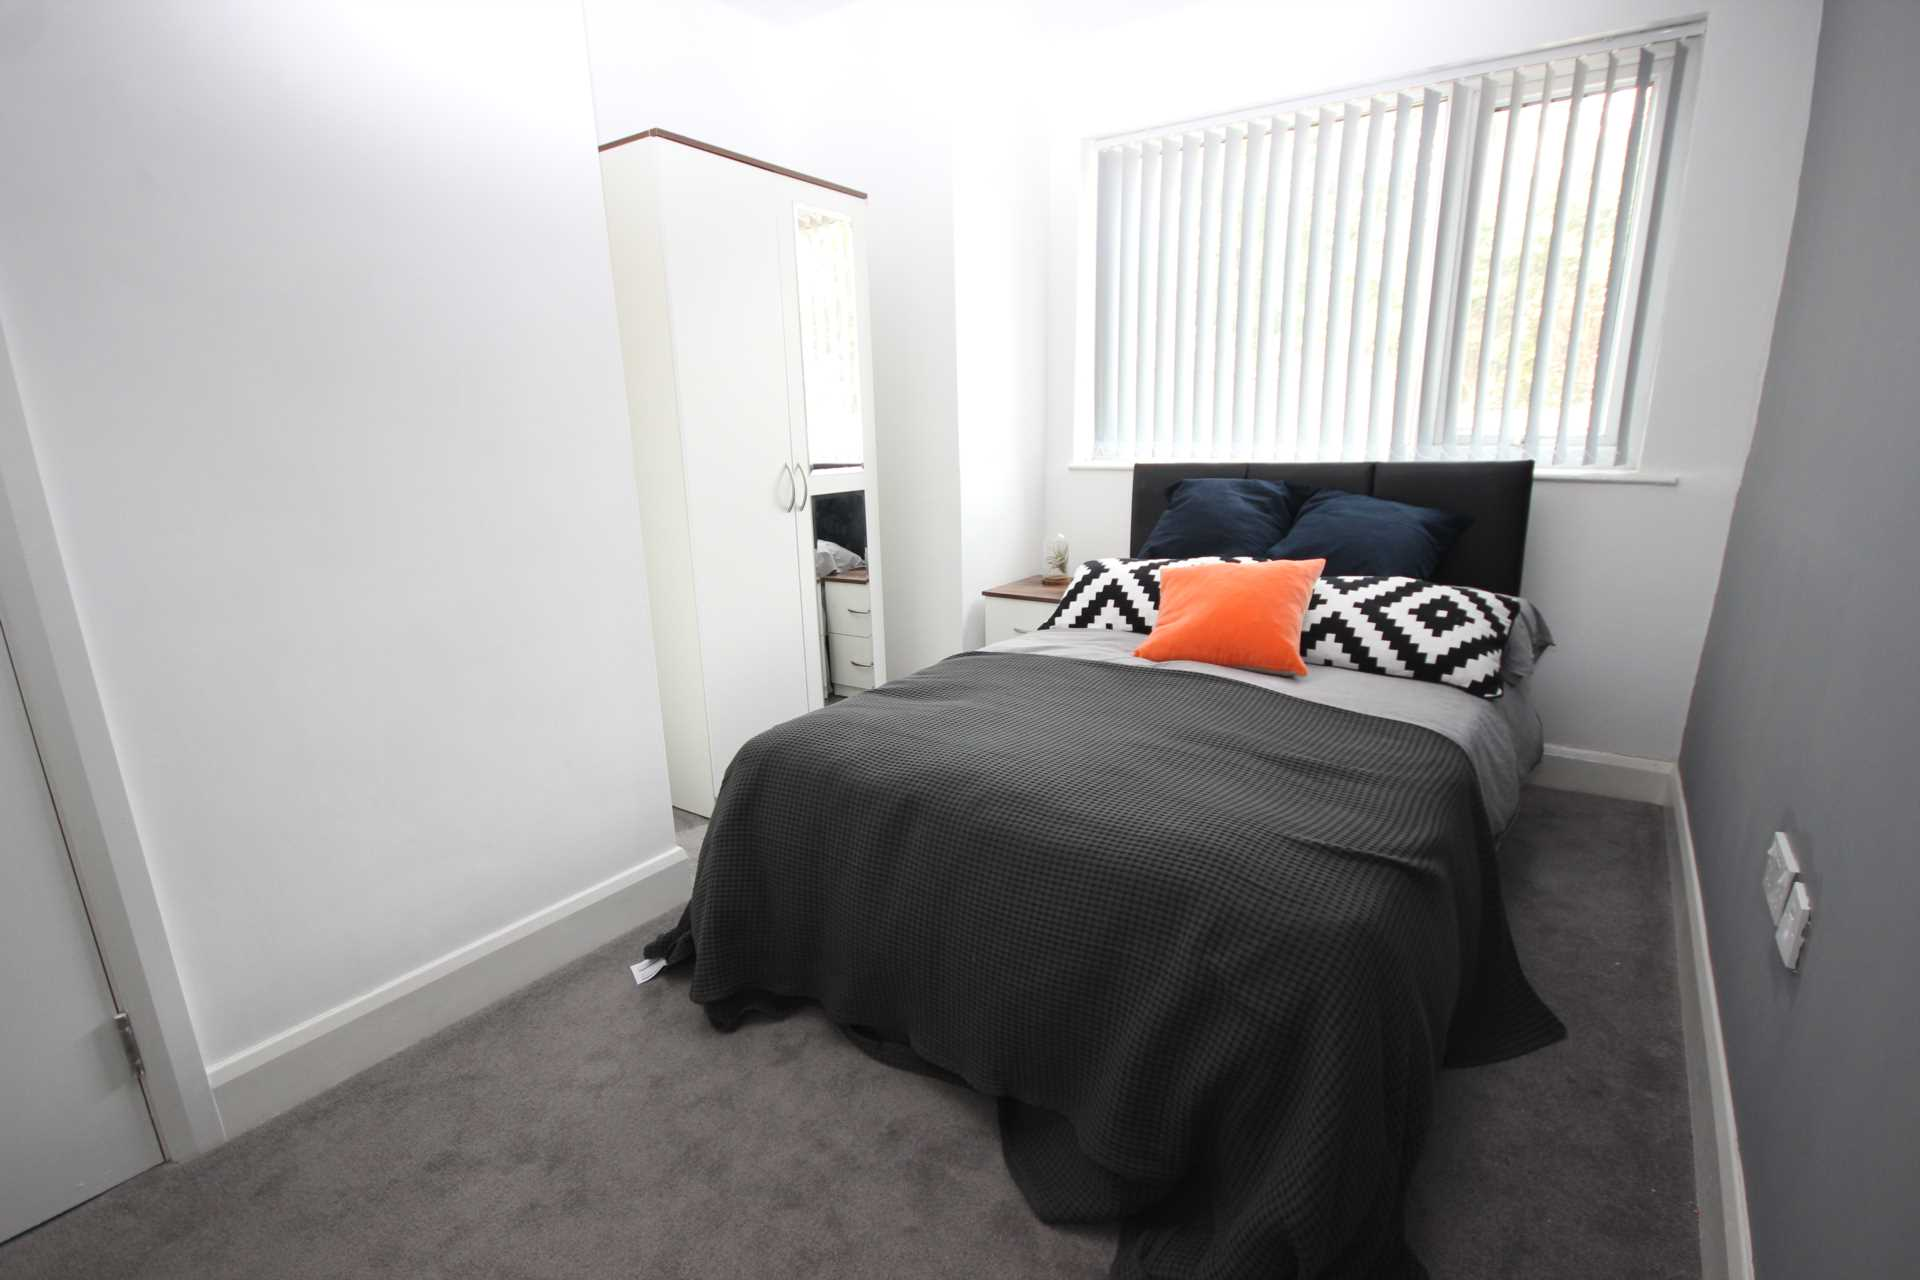 Piccadilly Property Management Ltd - 1 Bedroom Room (Double), Gleaves Road, Eccles, M30 0FU